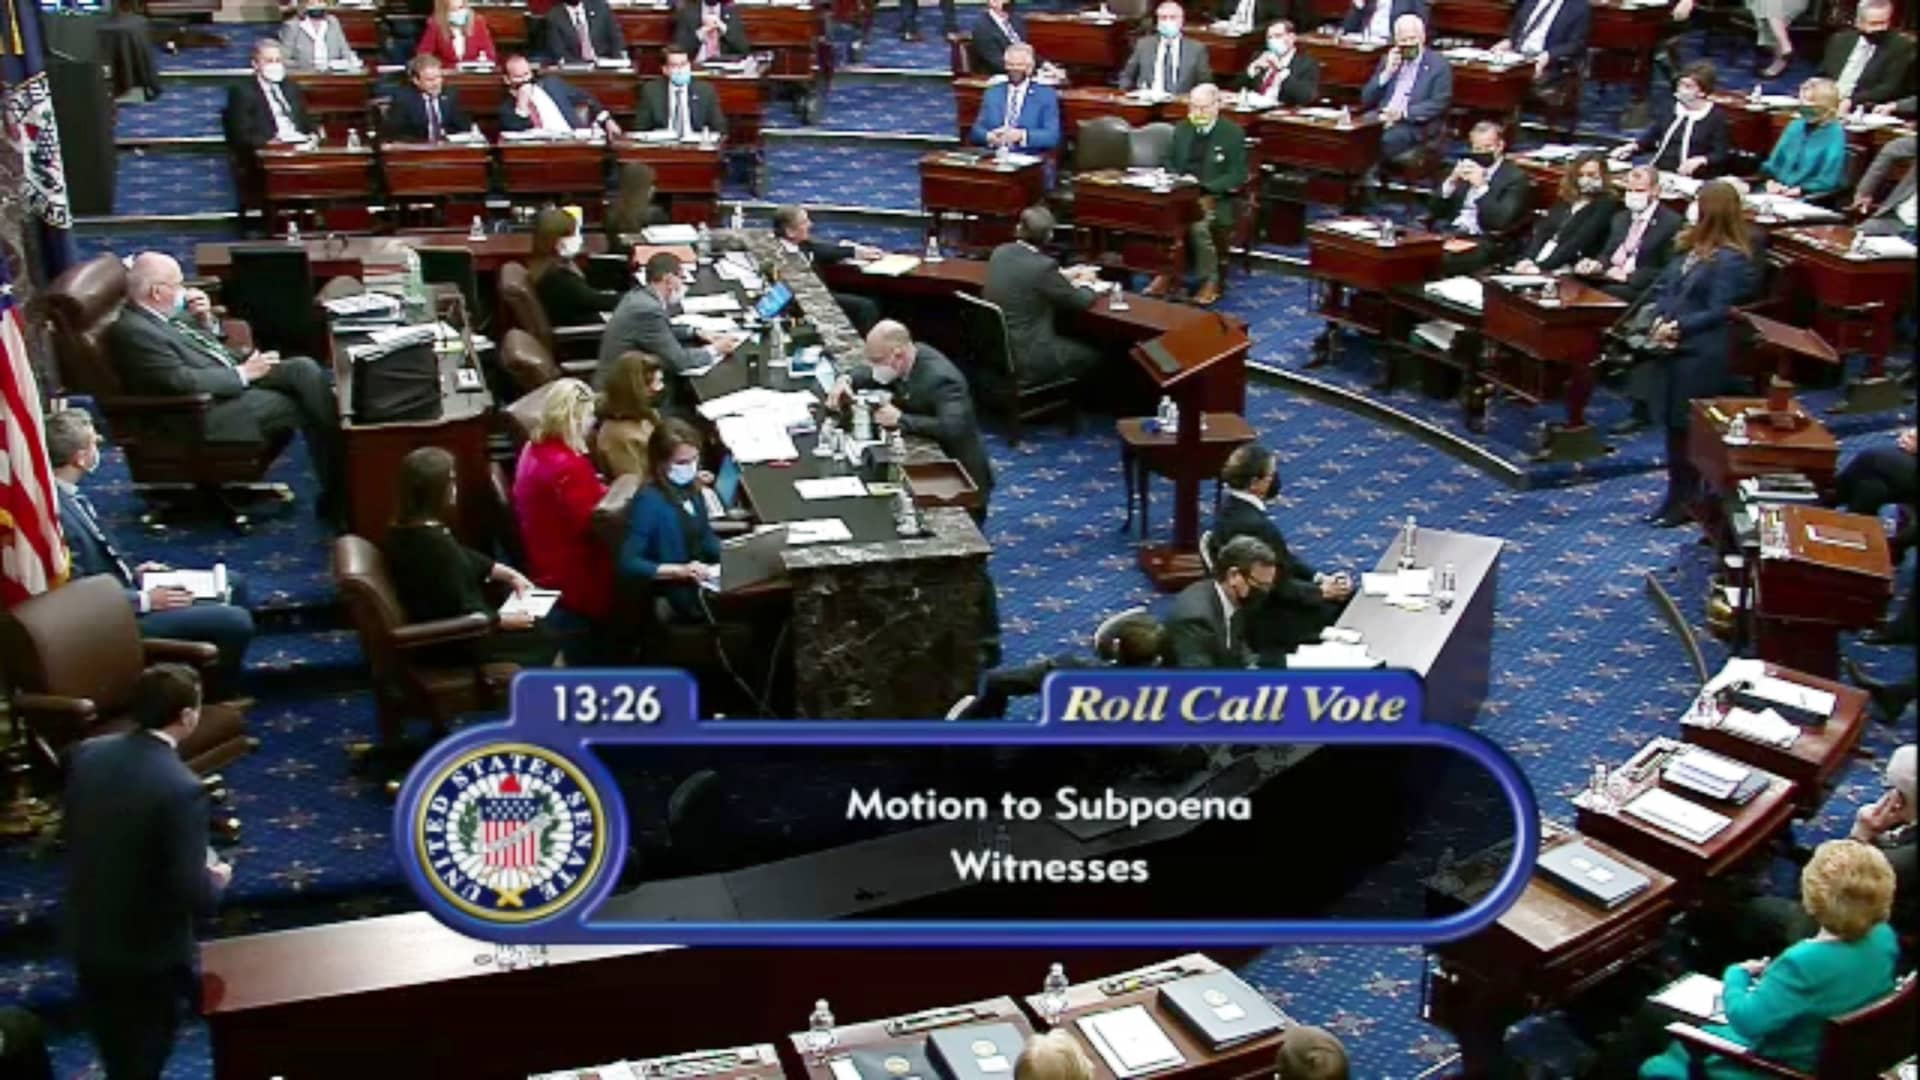 In this screenshot taken from a congress.gov webcast, a roll call vote is taken on a motion to subpoena witnesses on the fifth day of former President Donald Trump's second impeachment trial at the U.S. Capitol on February 13, 2021 in Washington, DC.